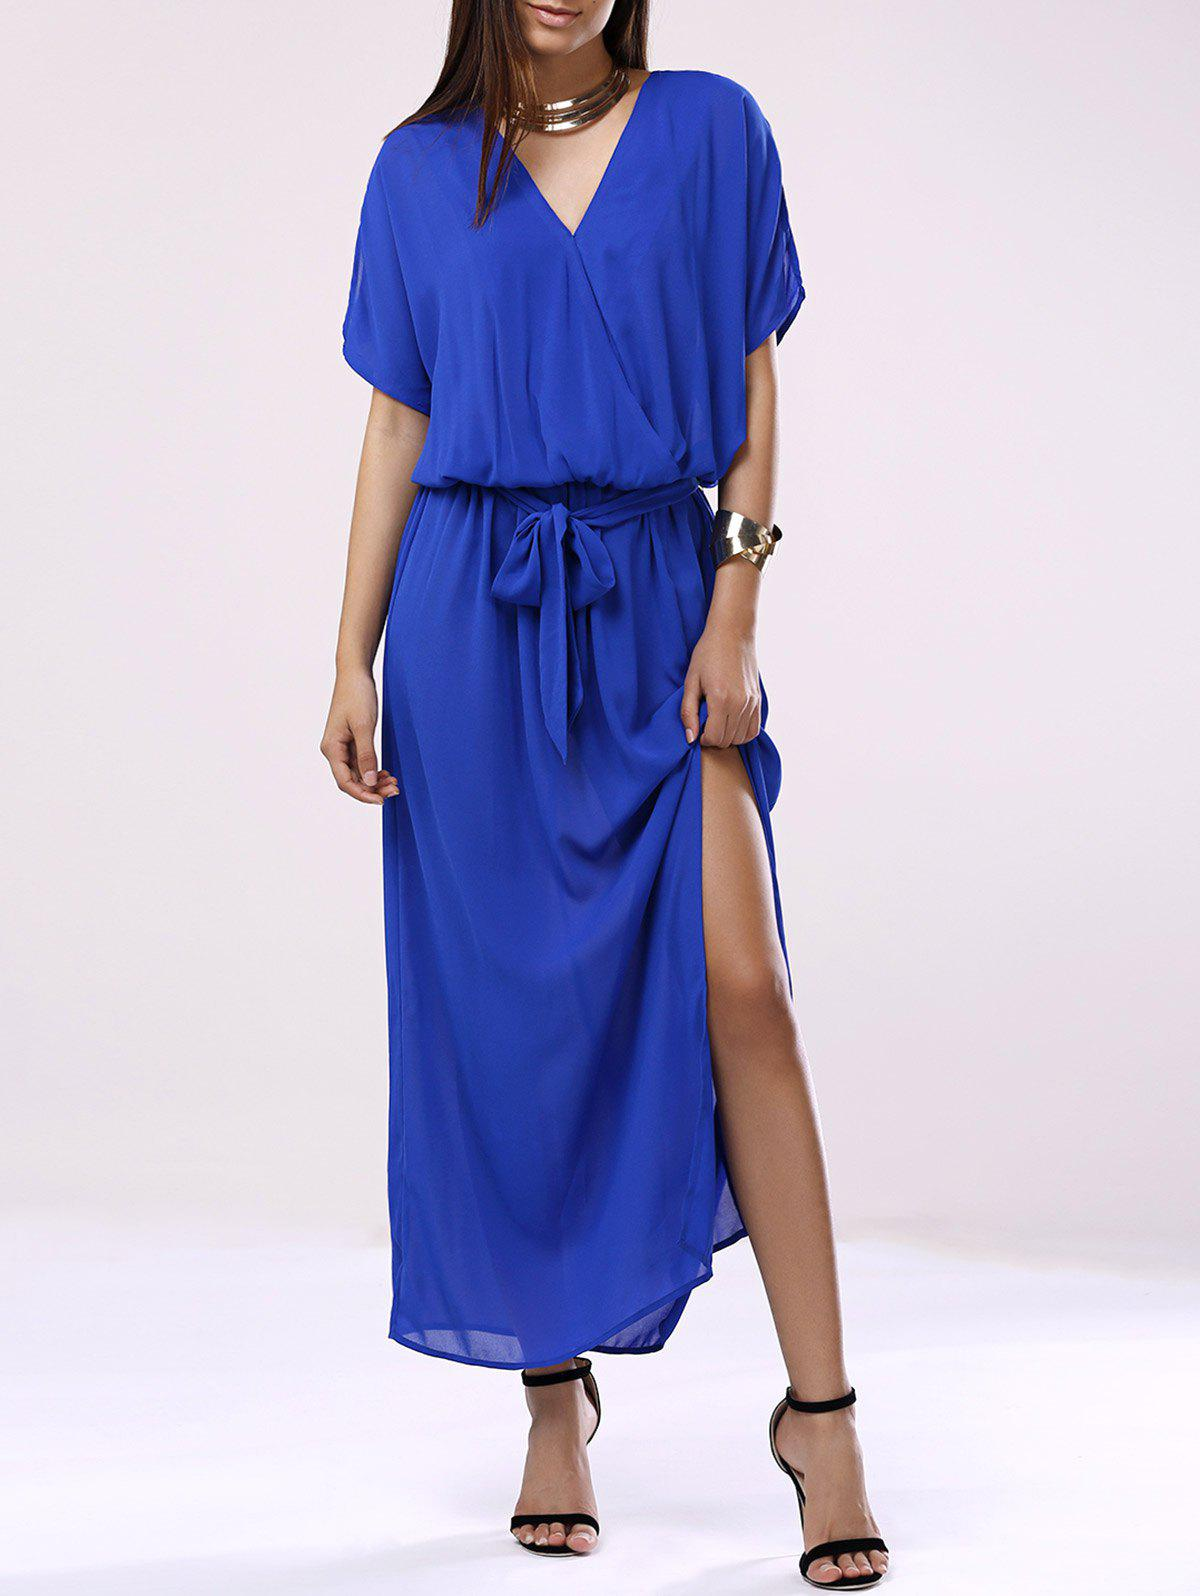 Elegant Women's V-Neck 3/4 Sleeve Chiffon Dress - DENIM BLUE XL